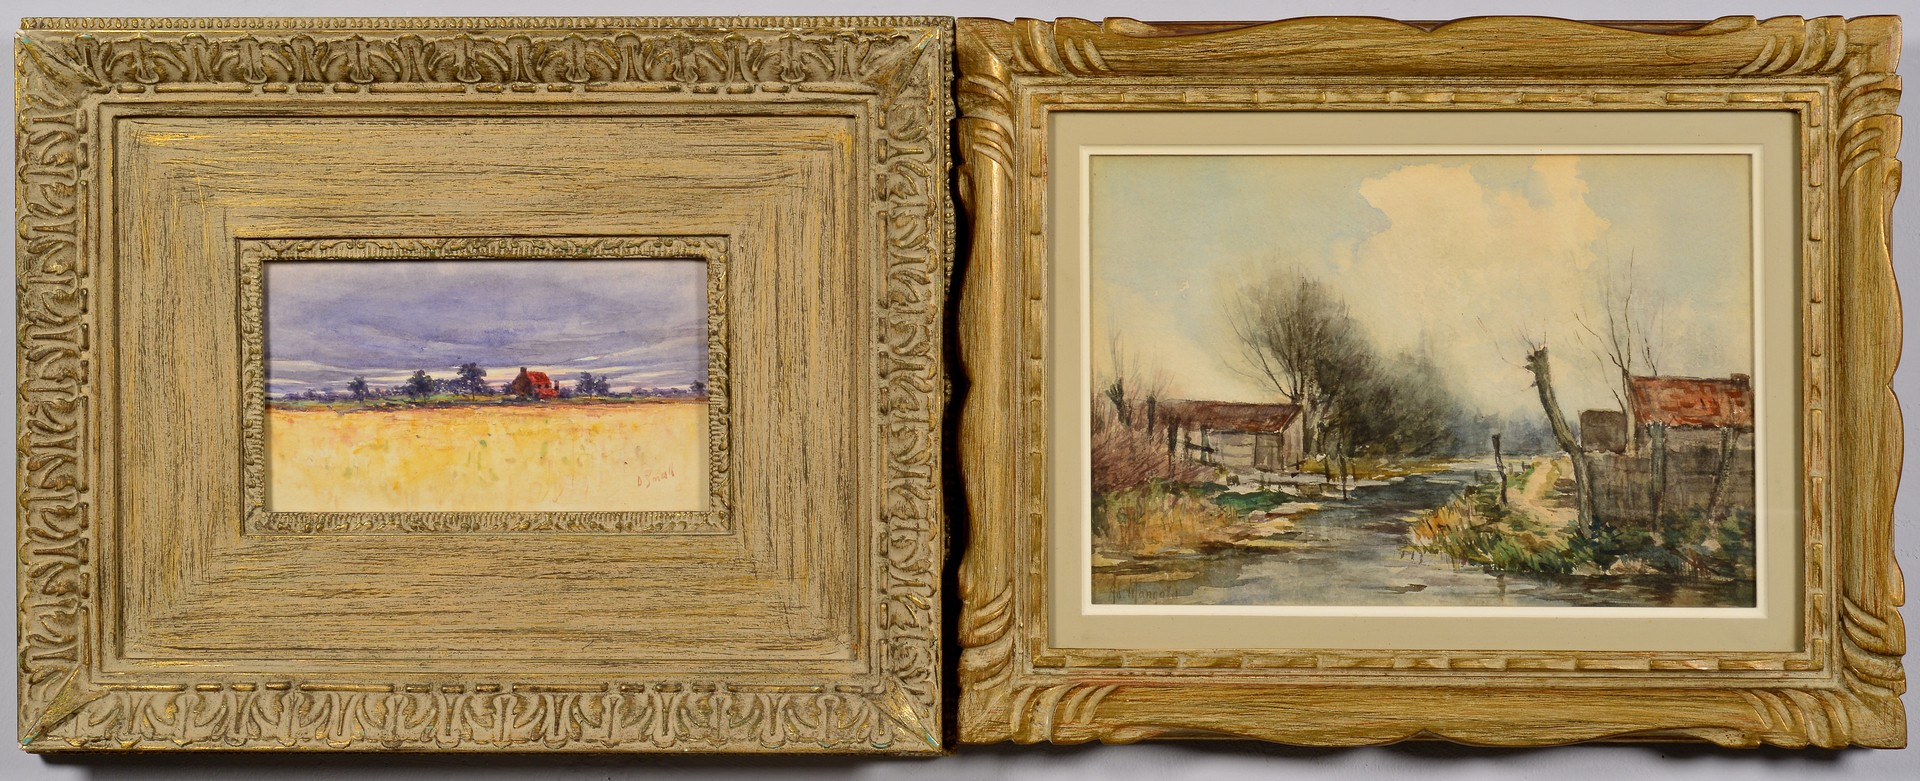 Lot 836: 2 Signed Watercolors, Rural Landscapes, late 19th